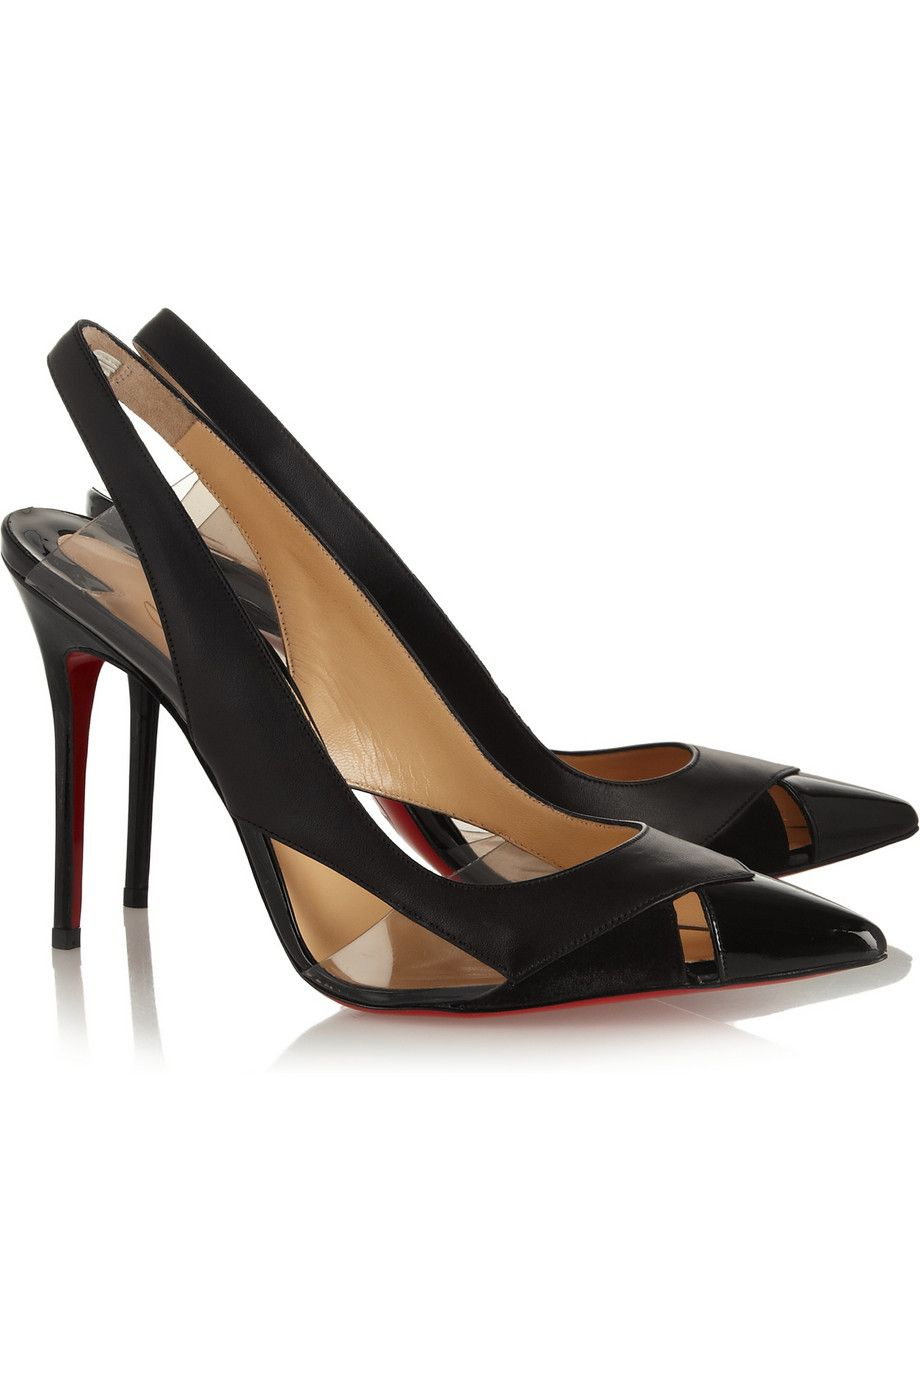 Le Meilleur Christian Louboutin Air Chance 100 Leather And Suede Ce Mois Ci